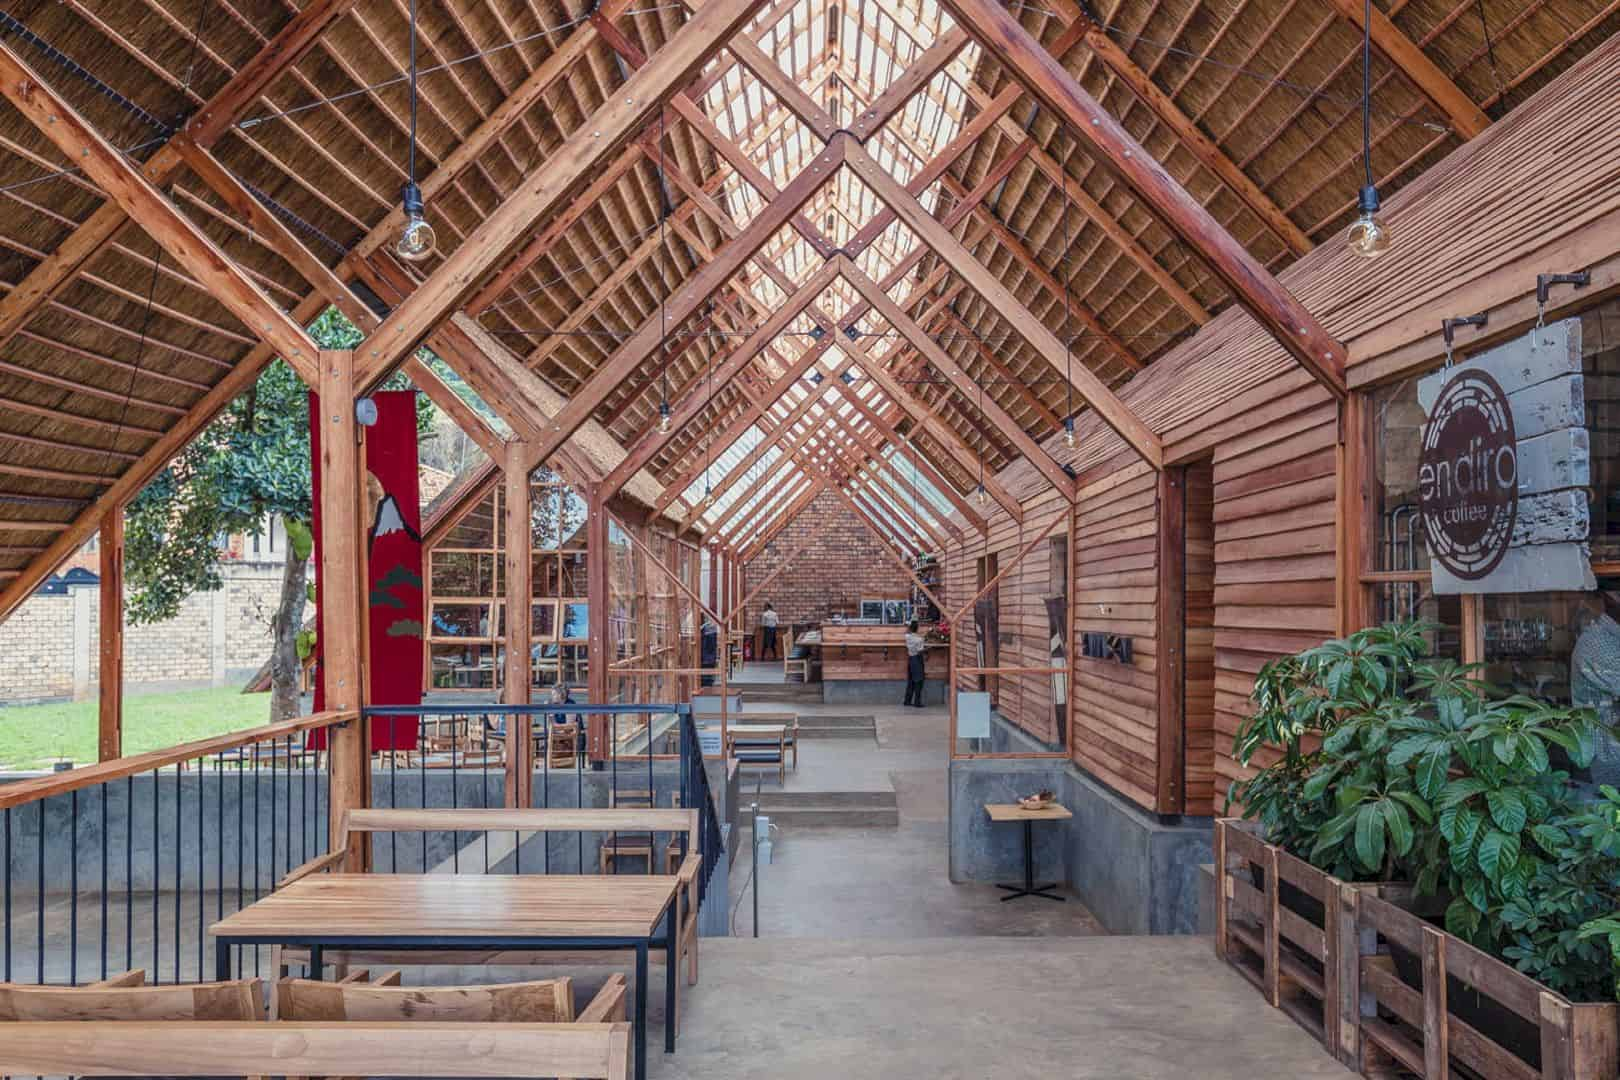 Yamasen Japanese Restaurant: A Commercial Facility with A Small Store and A Japanese Restaurant